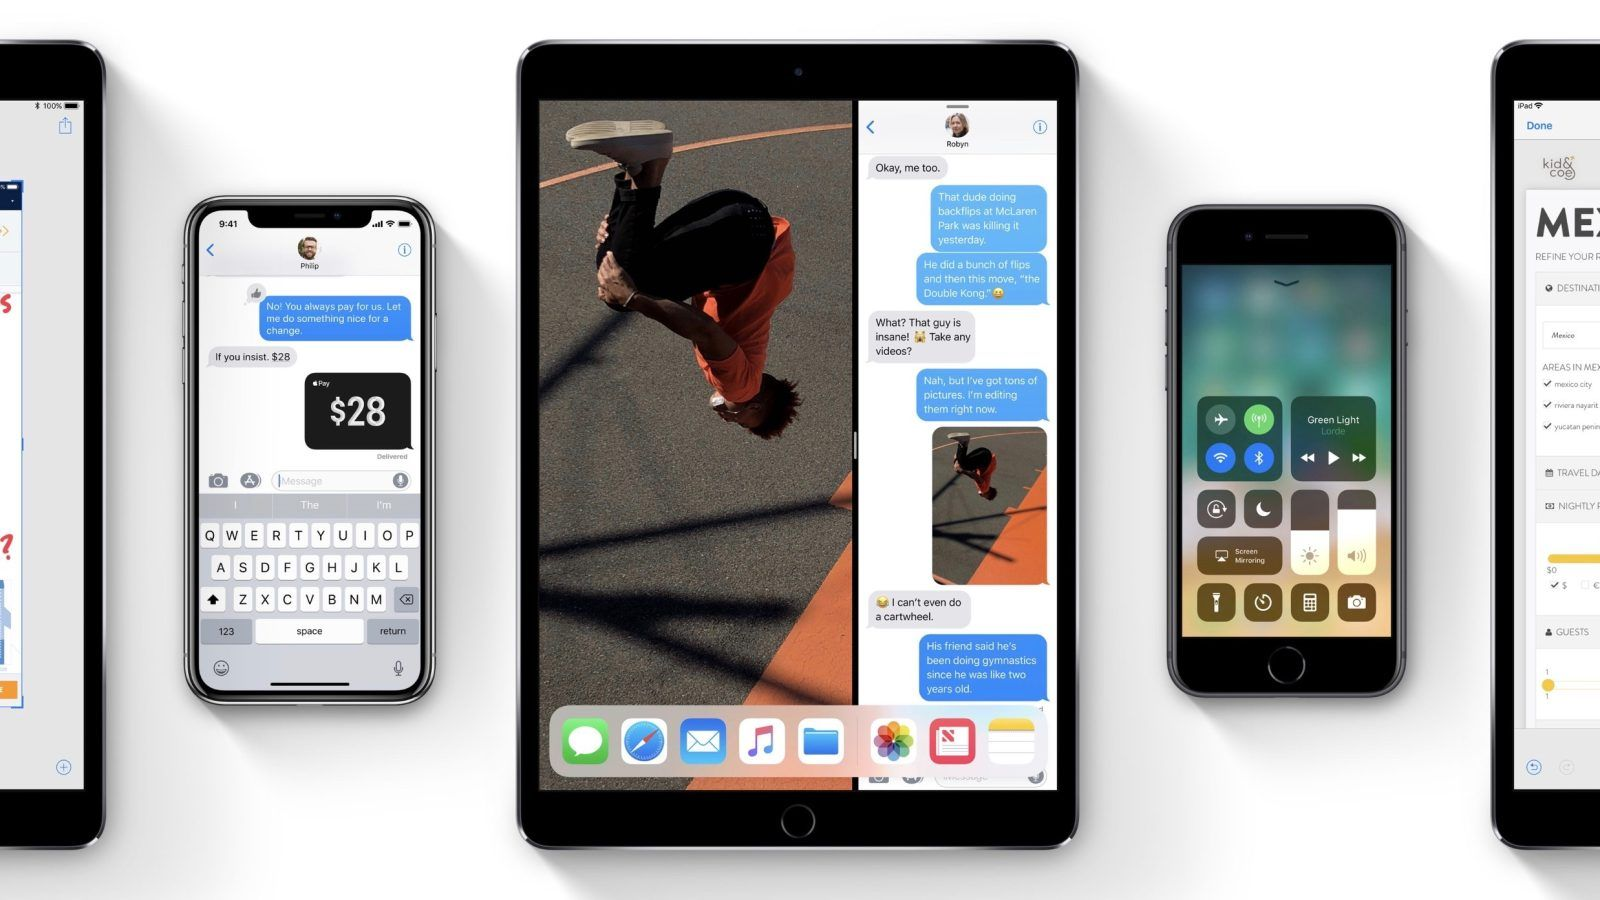 Tips To Recover Lost Files From Iphone Or Ipad With Without Backup